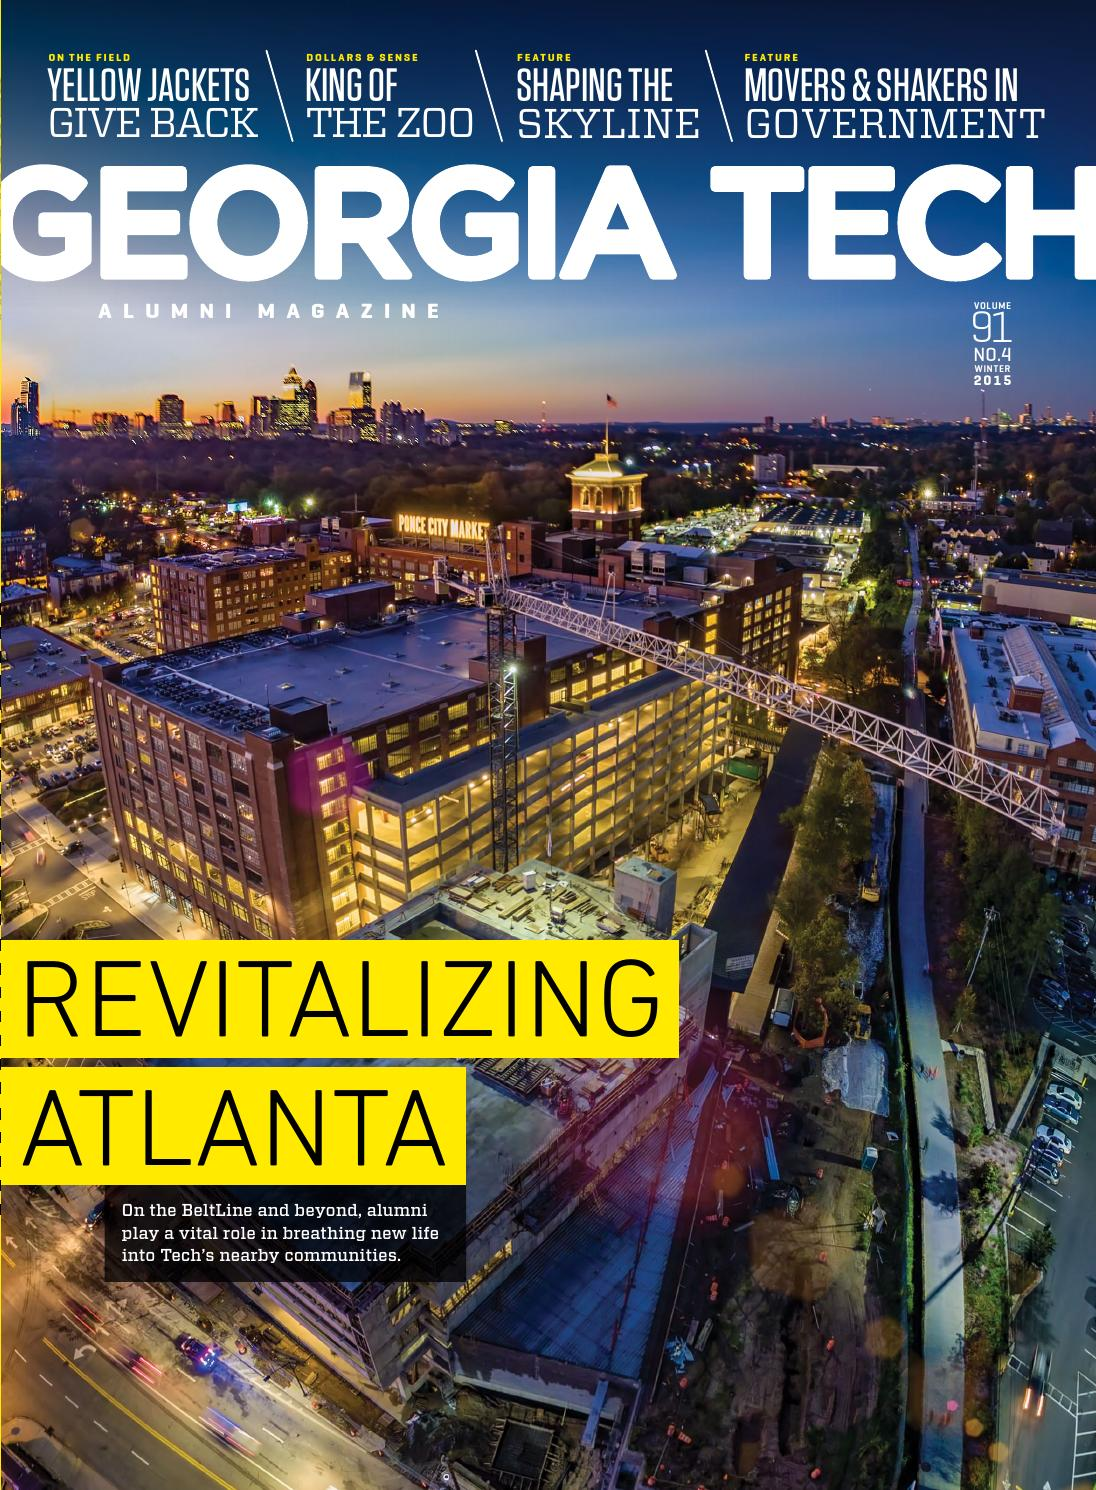 Georgia tech essays that worked